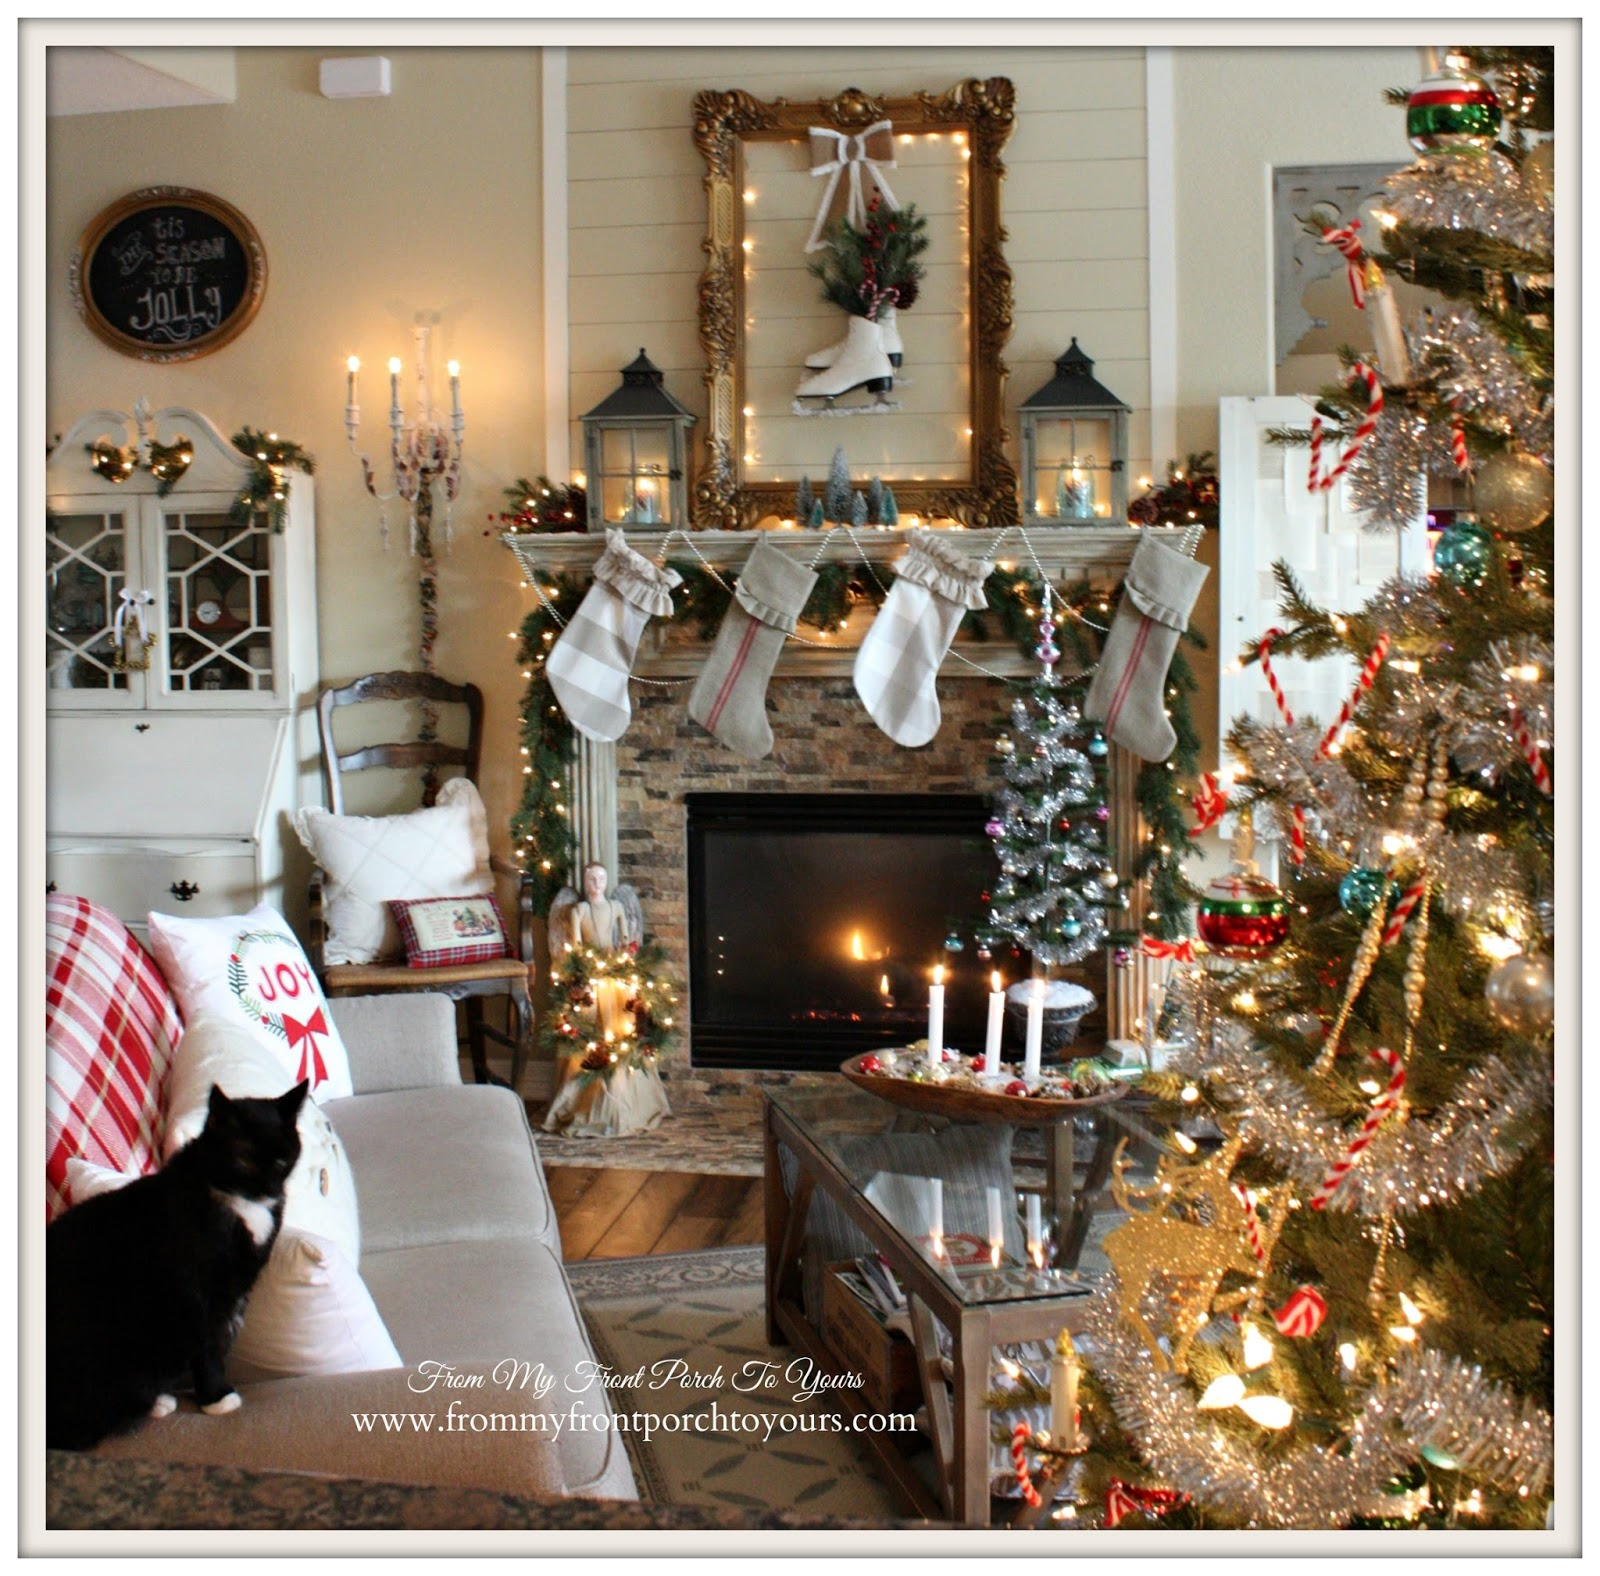 Farmhouse- Vintage- Christmas- Living Room-Fireplace-Tree-Kitty- From My Front Porch To Yours